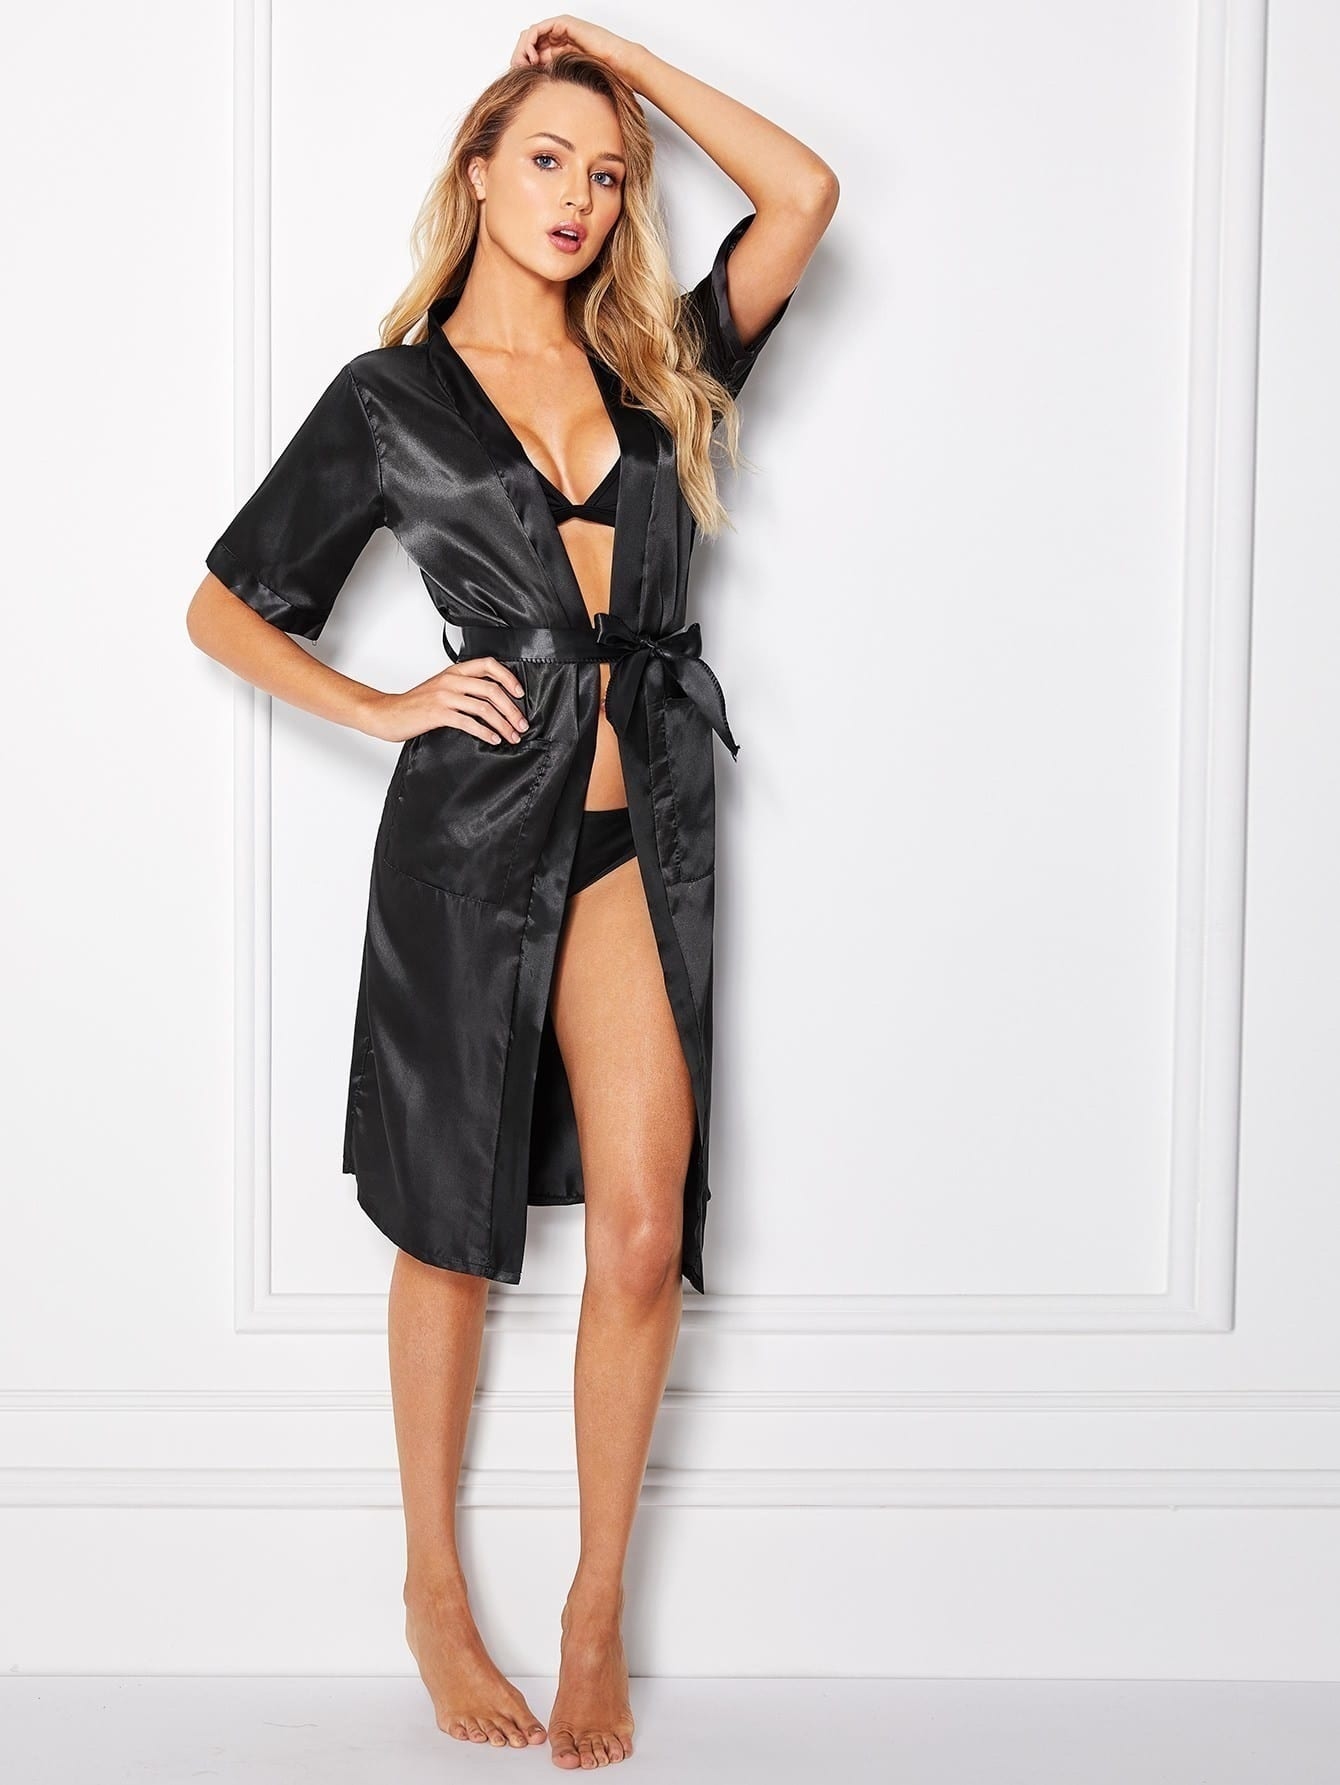 Self Tie Satin Robe With Panty self tie satin robe with panty